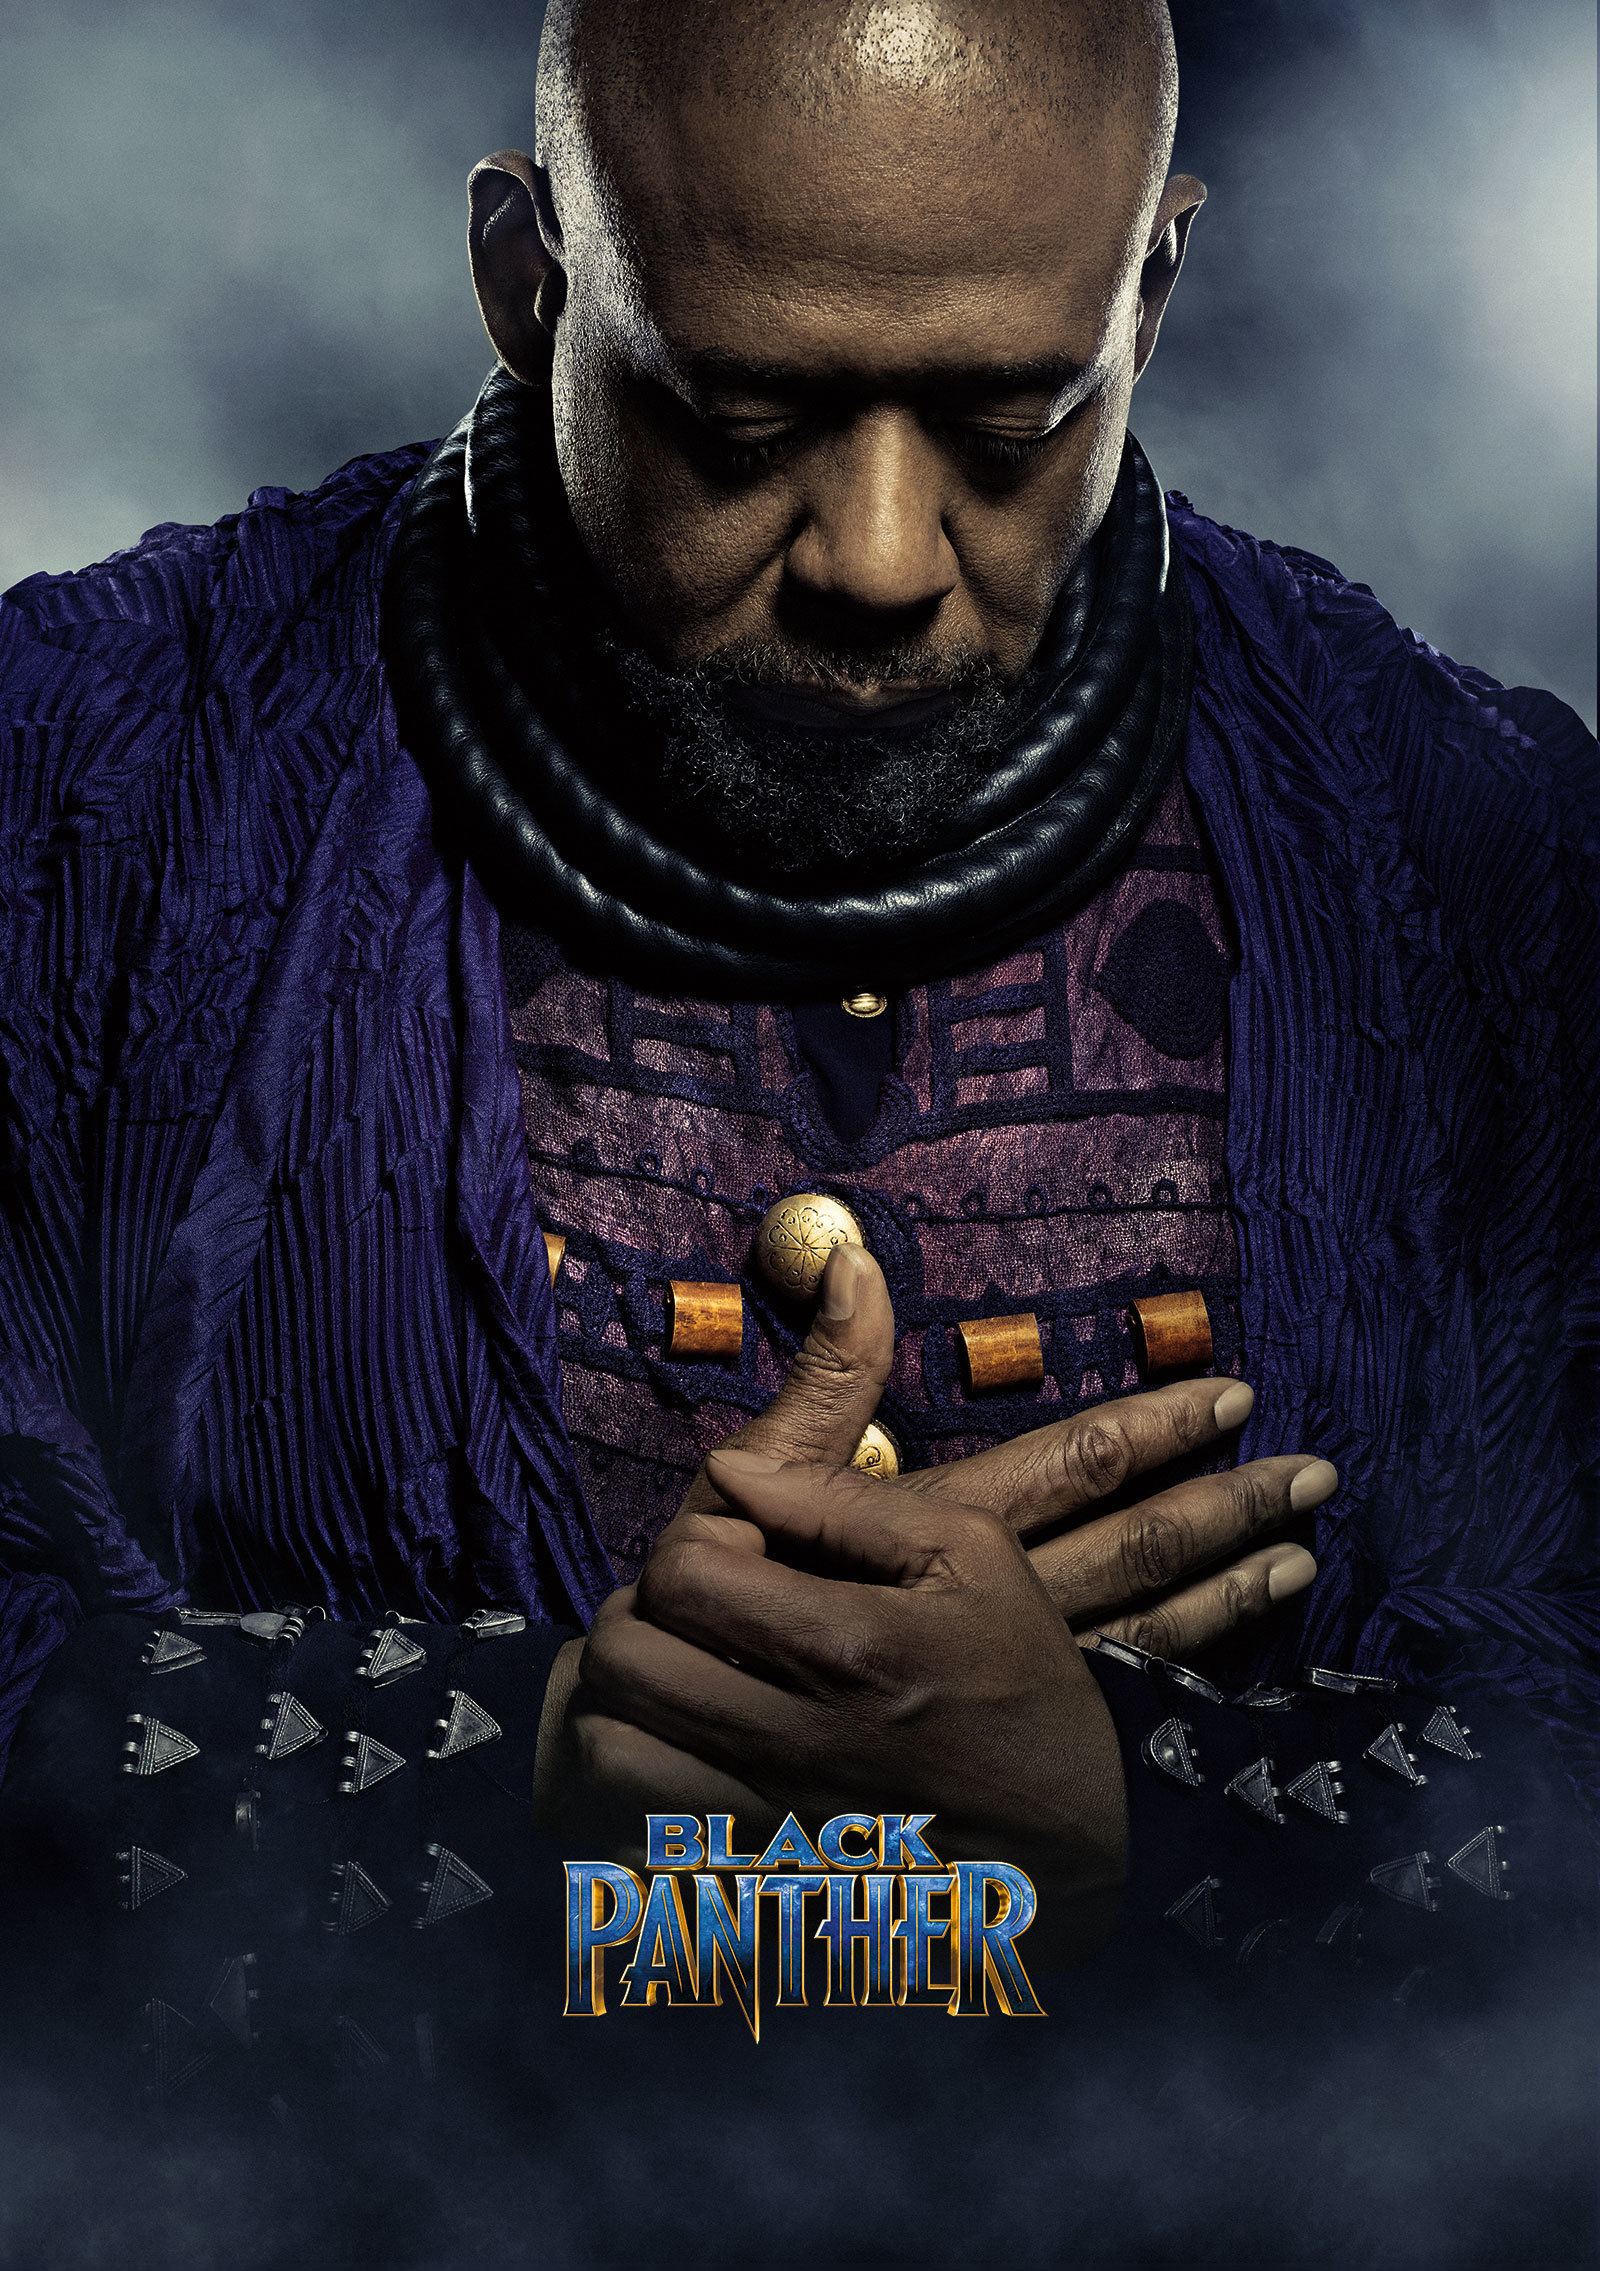 Black Panther - Characters - ZURI